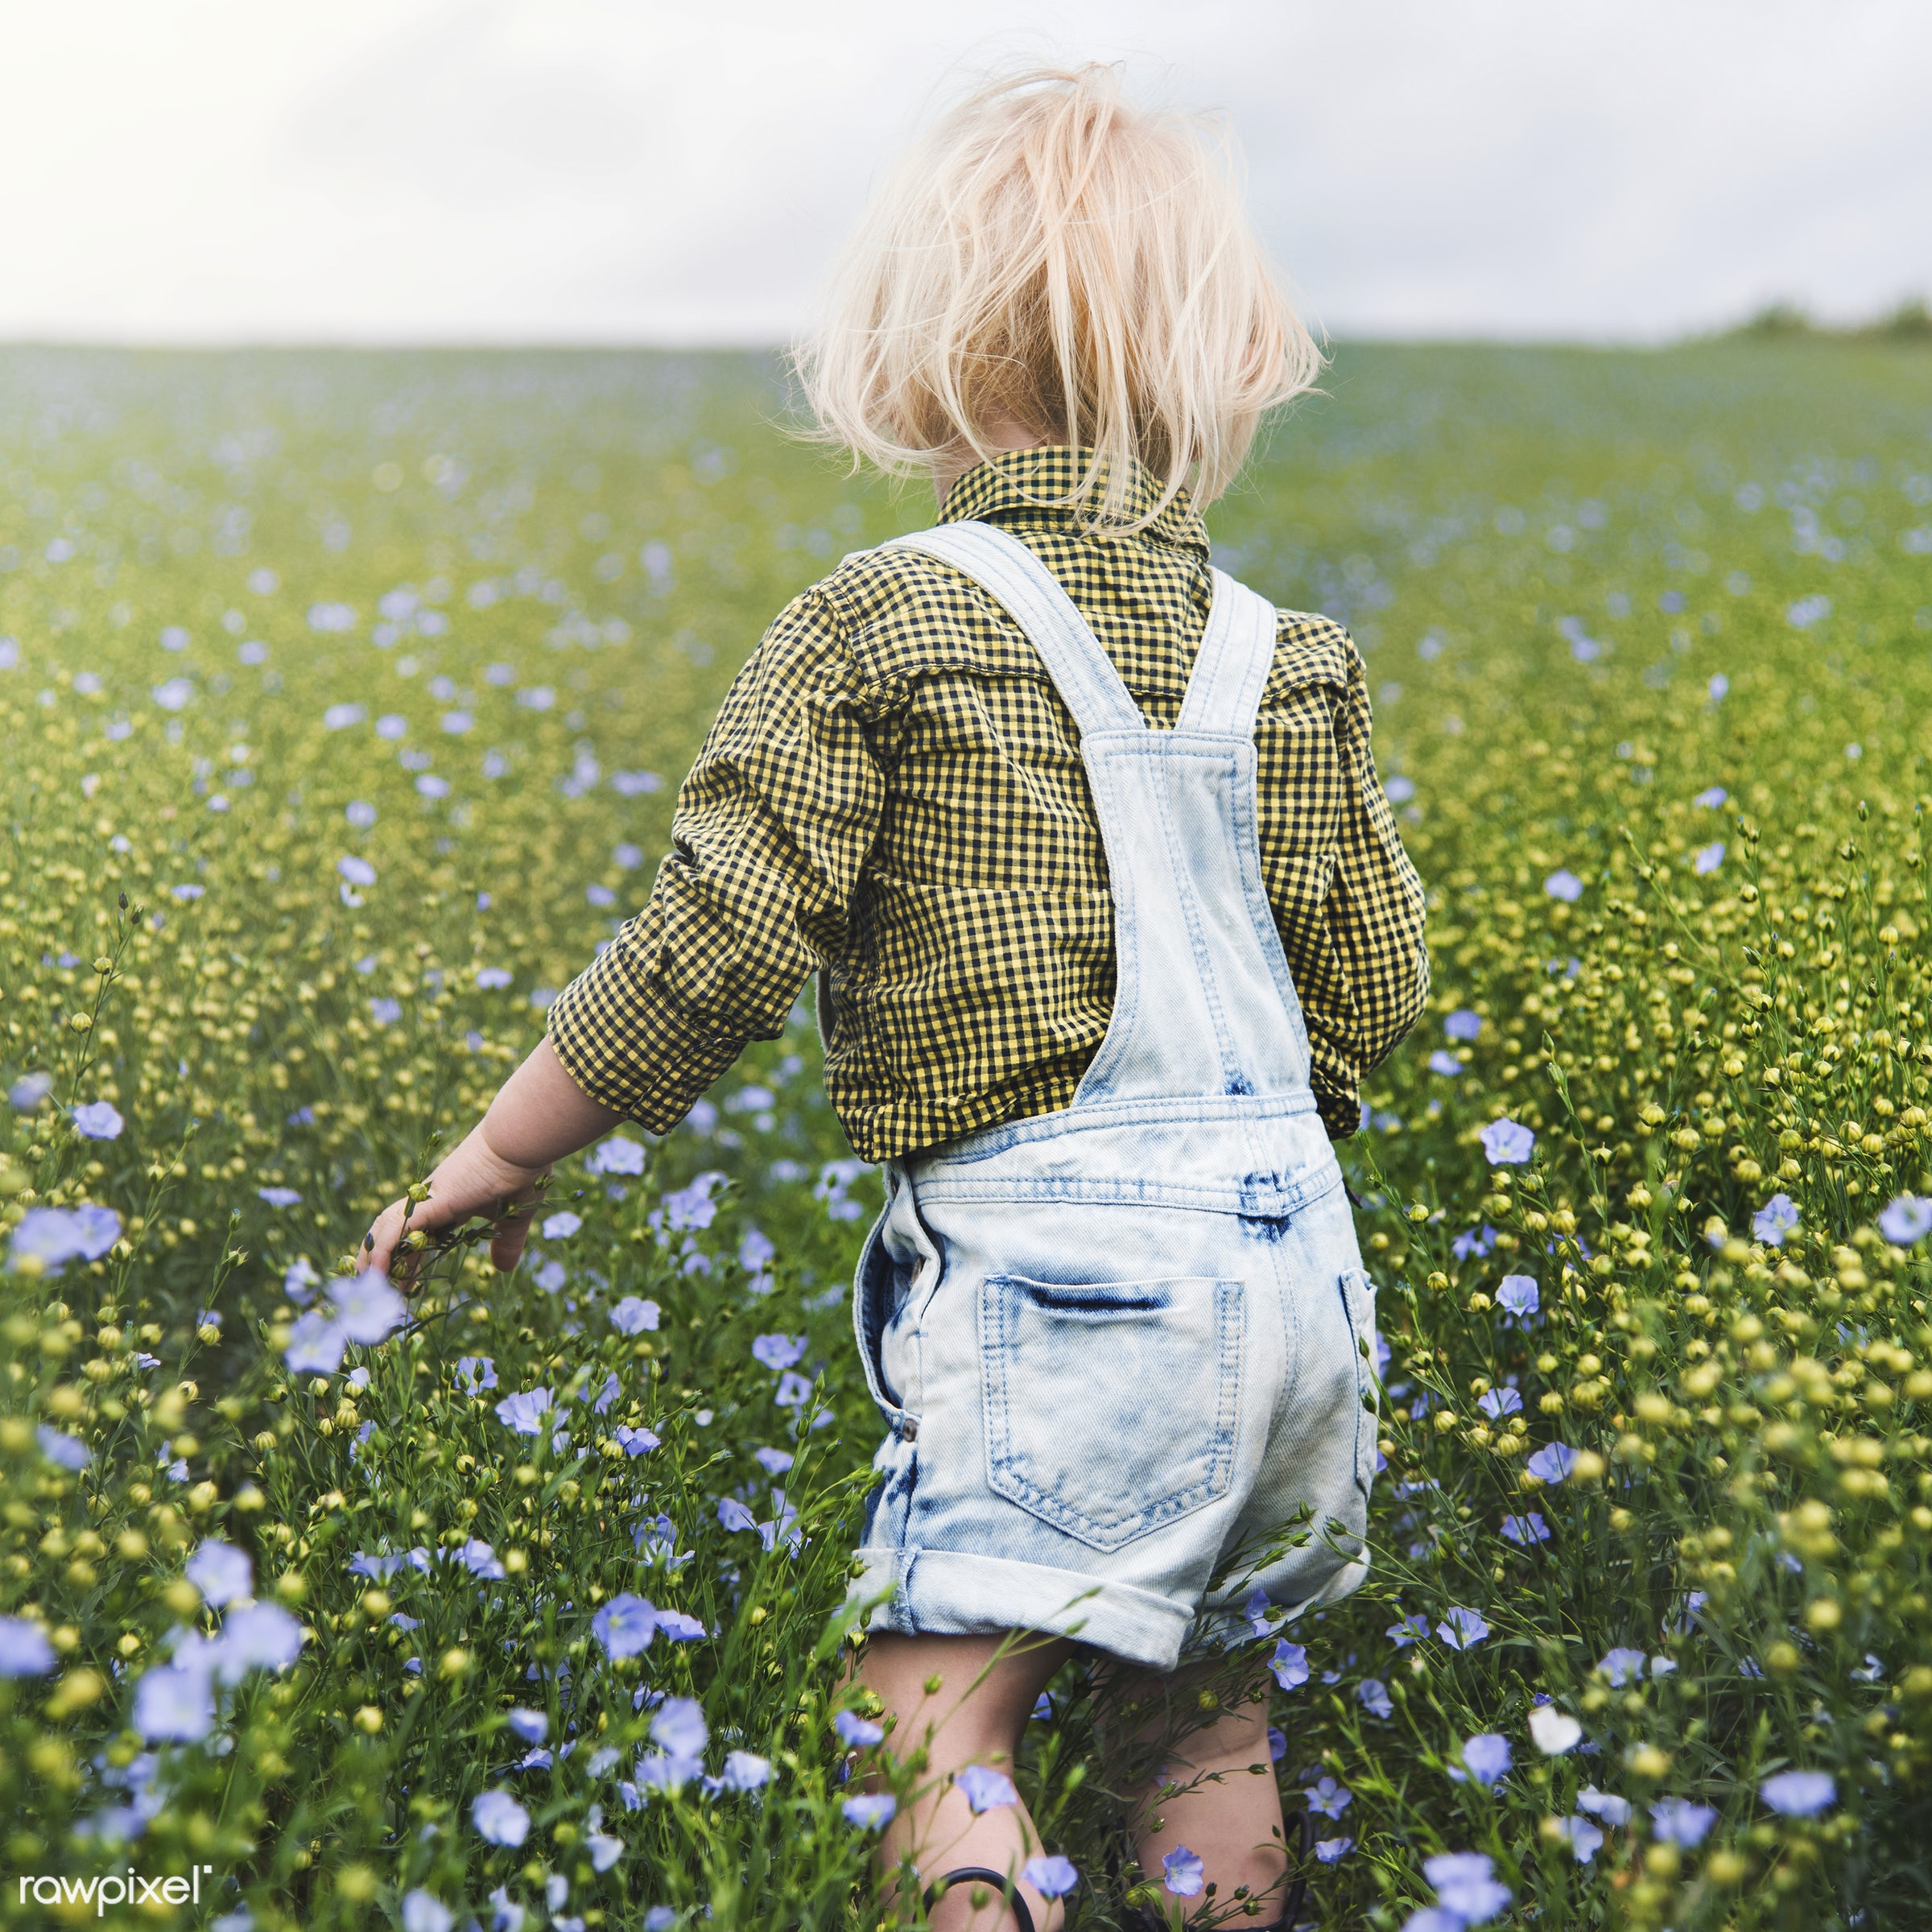 Kid in the garden - alone, backyard, bloom, blooming, blue, botanical, botany, boy, cheerful, child, children, countryside,...